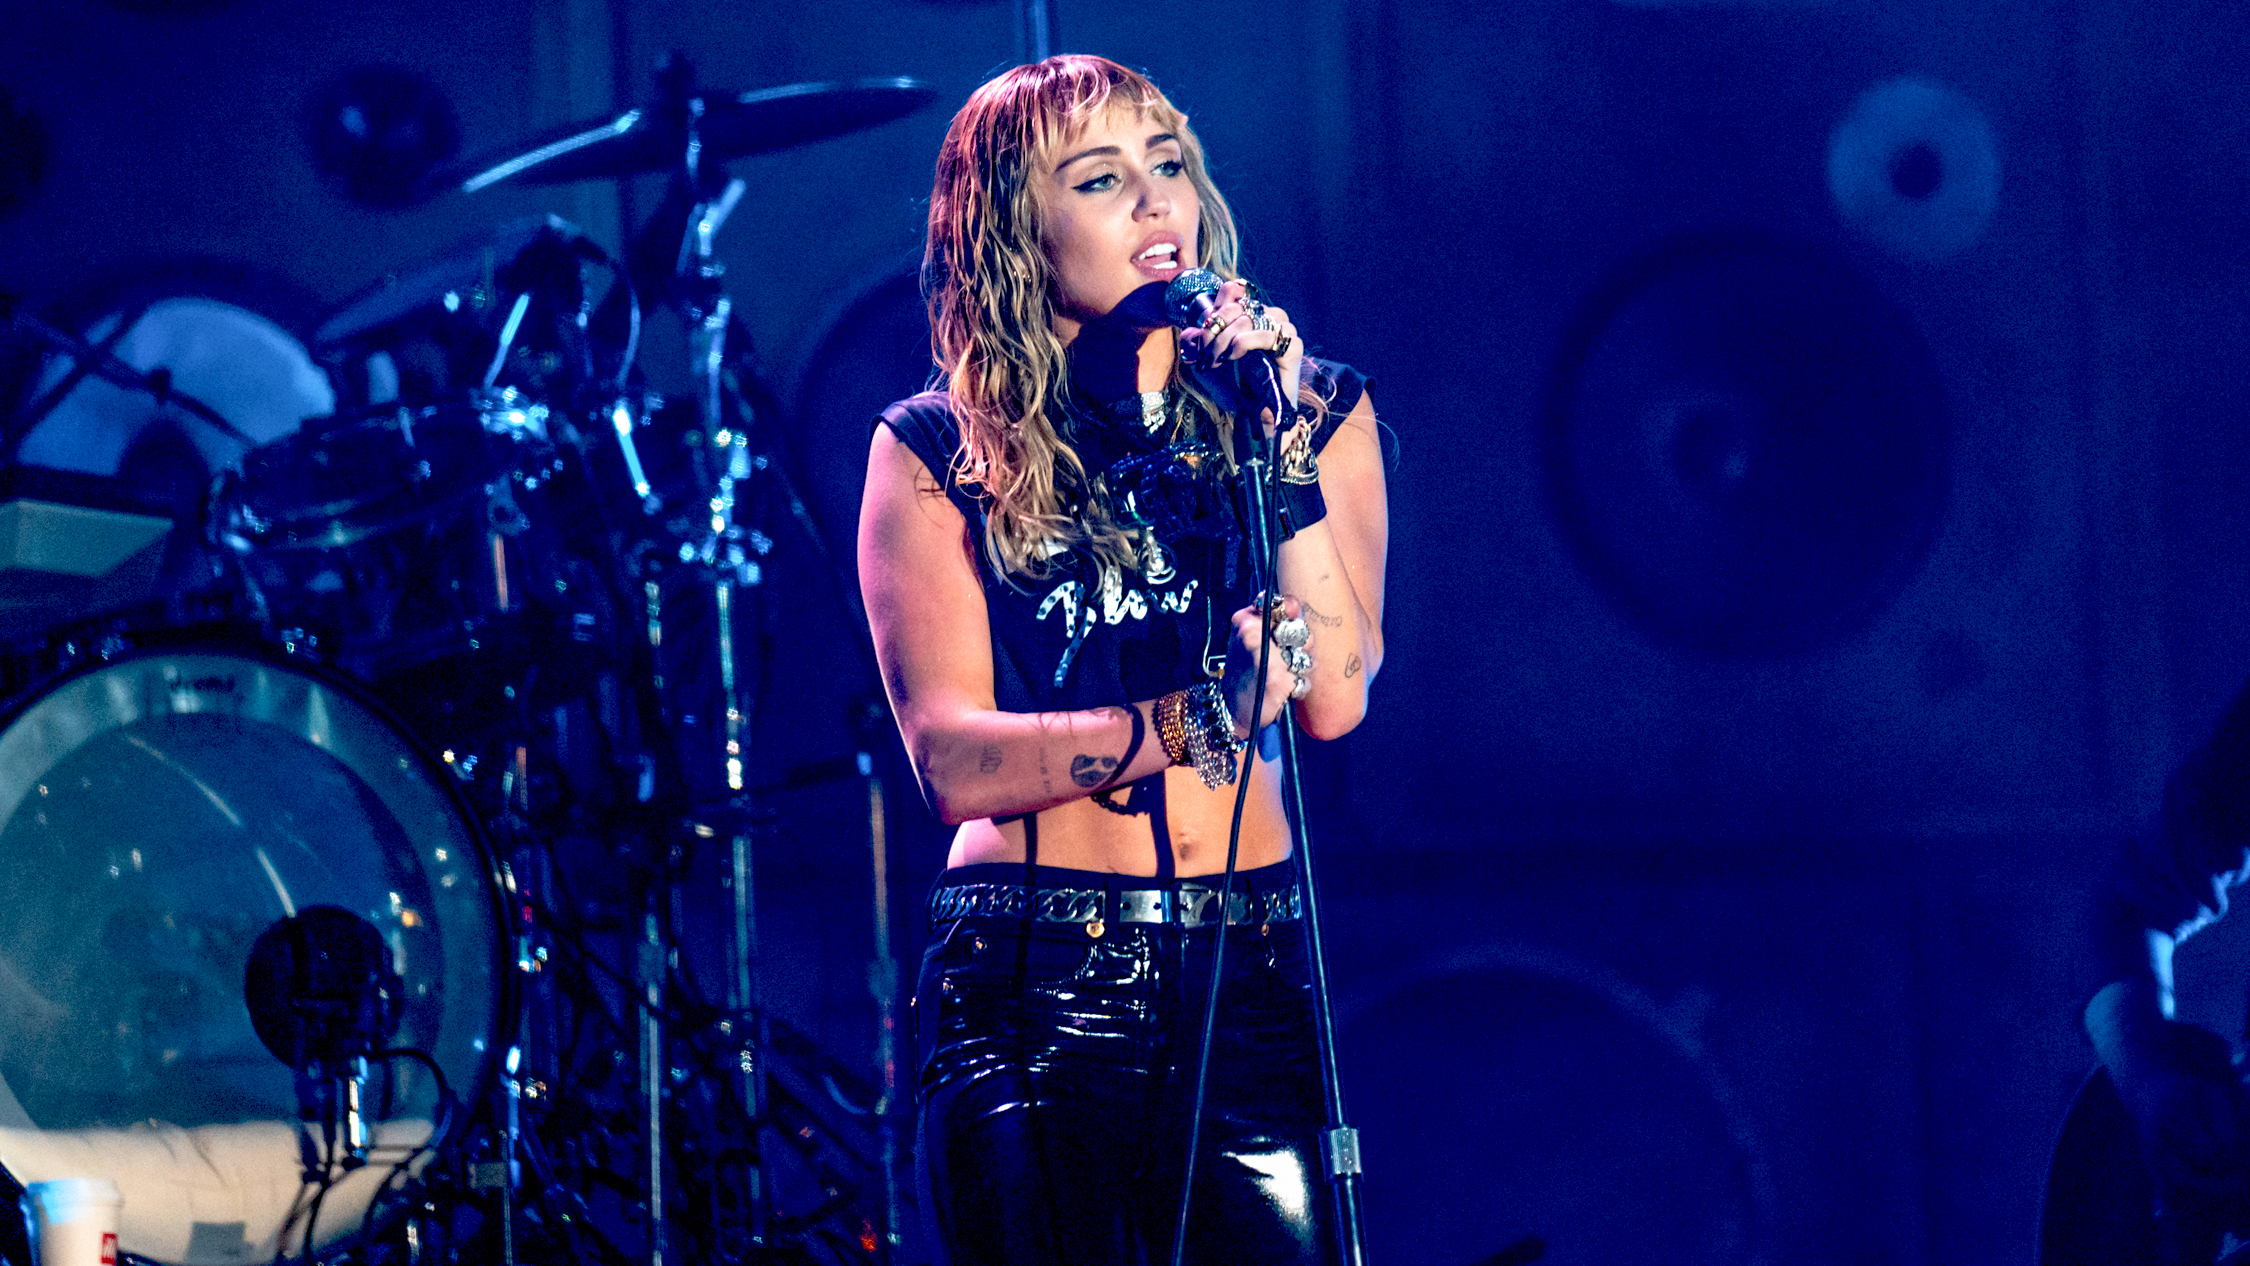 Miley Cyrus is coming to Melbourne to perform a bushfire benefit concert